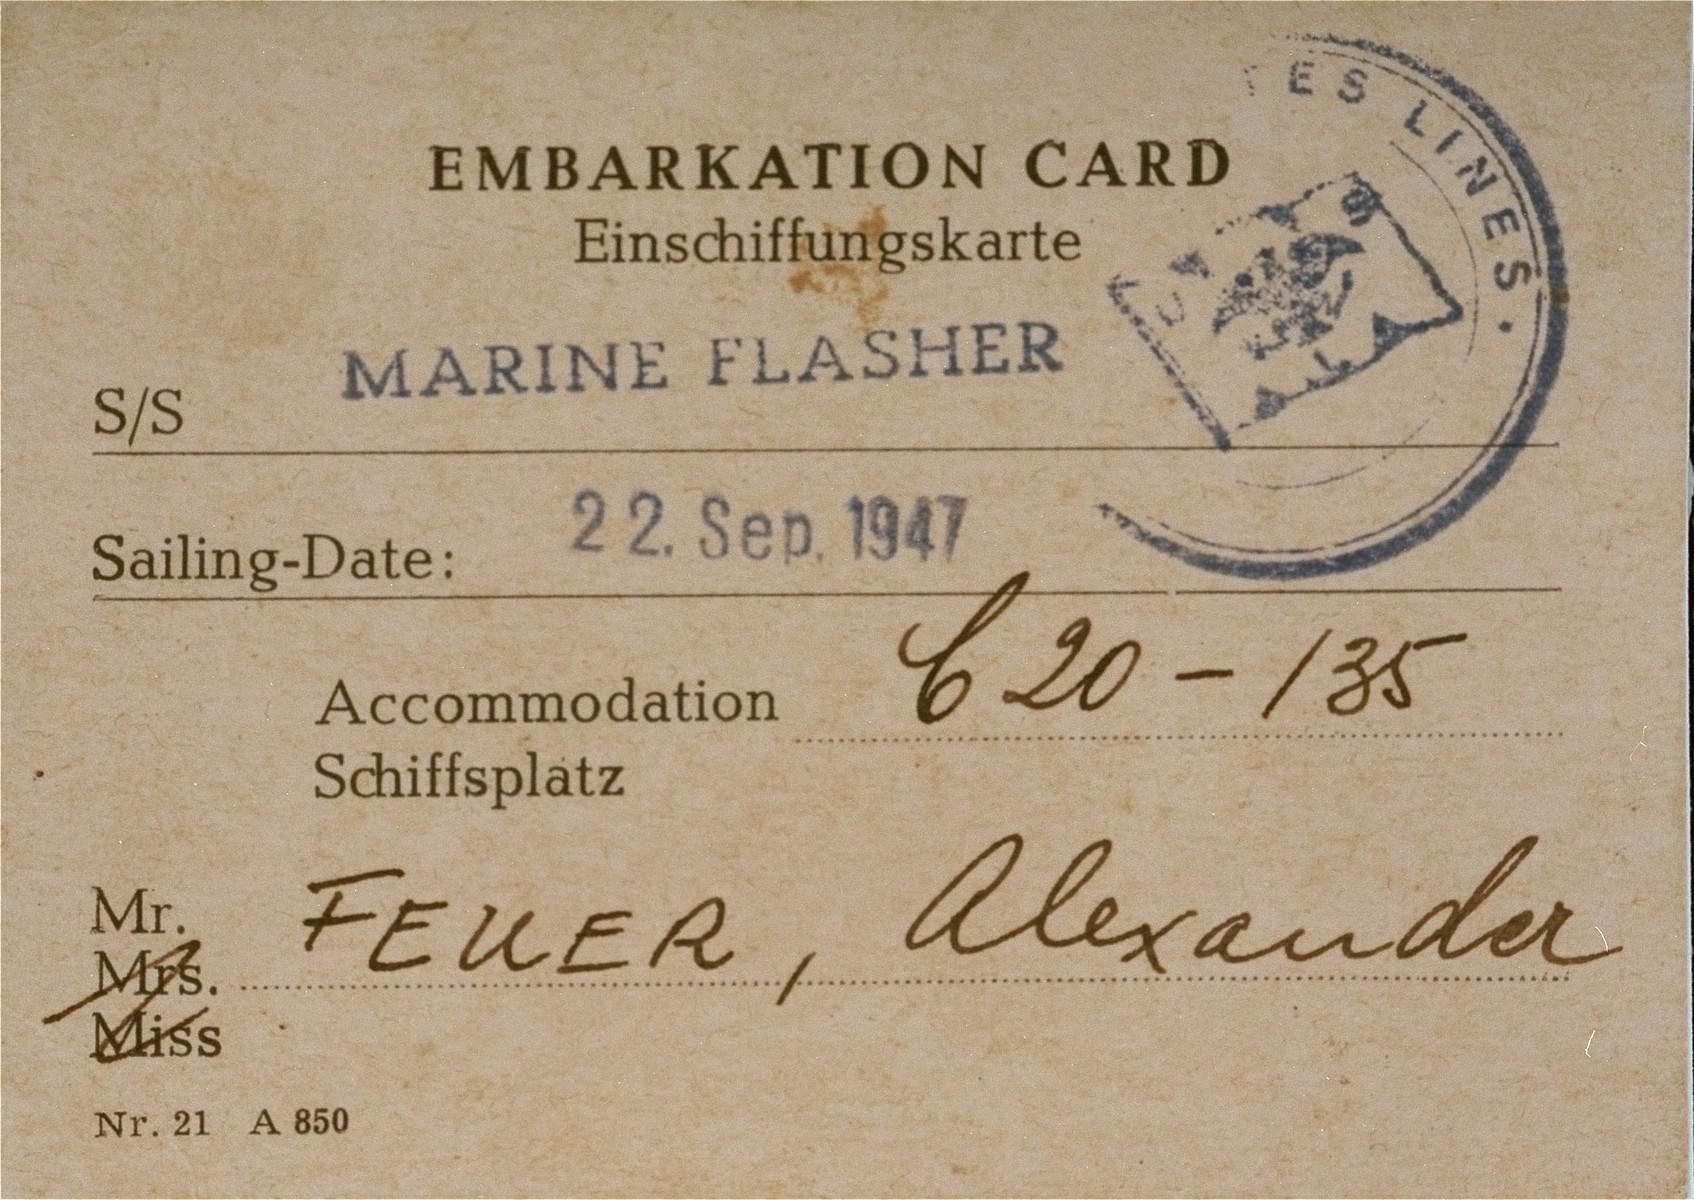 Embarkation card for the USS Marine Flasher dated Sep. 22, 1947 issued to Alexander Feuer, indicating his place on the ship.